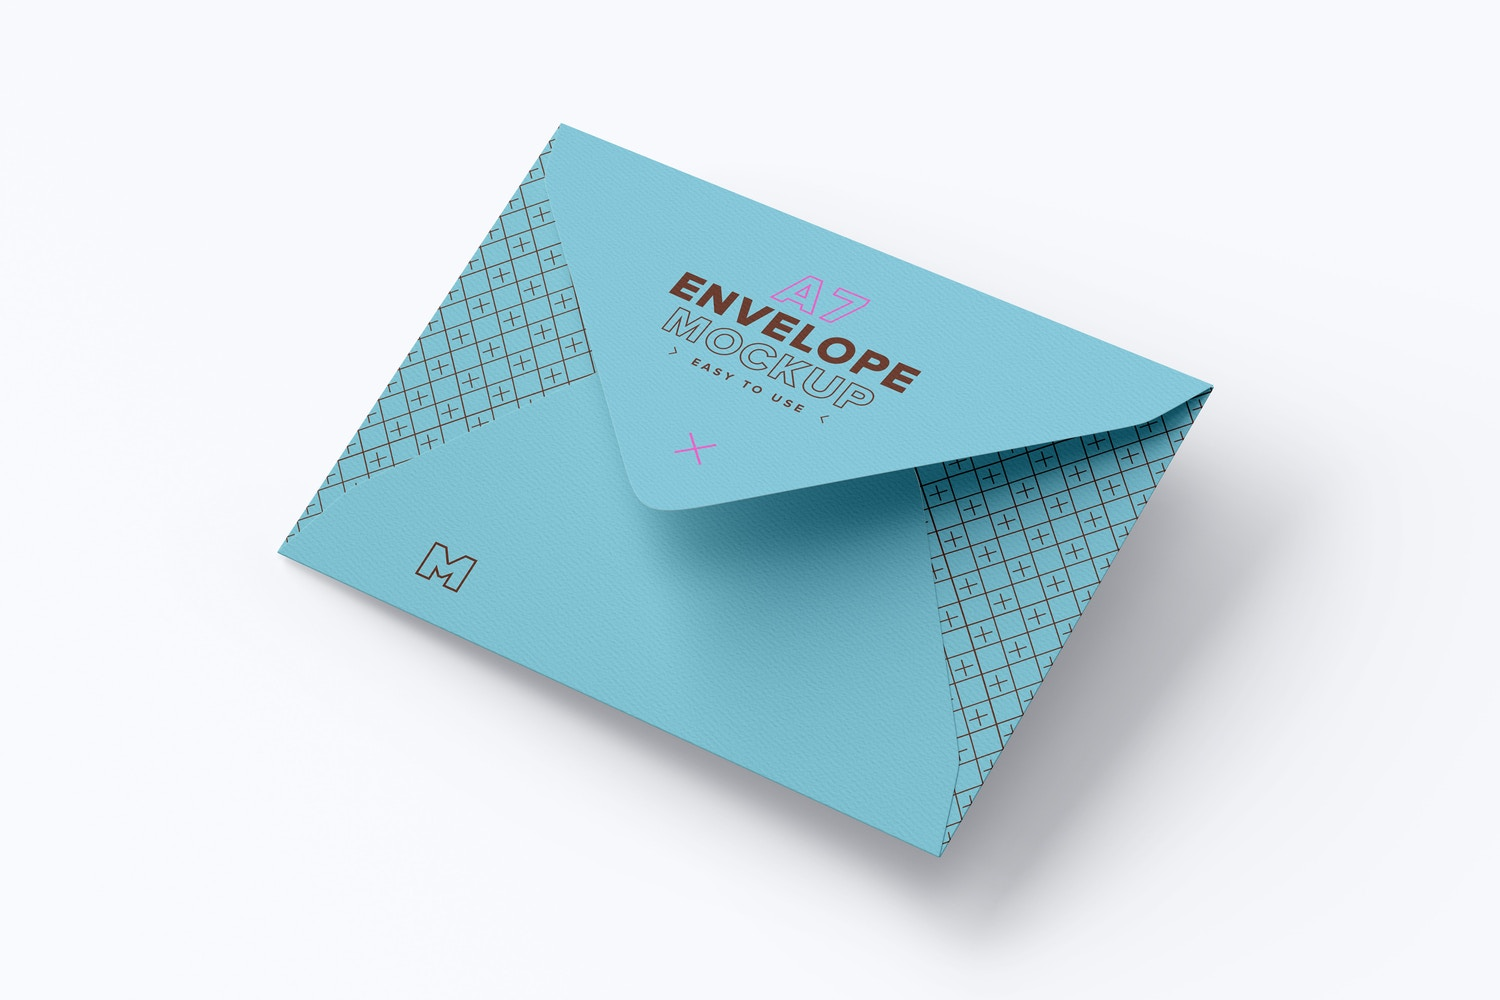 A7 Envelope Mockup 01 by Original Mockups on Original Mockups